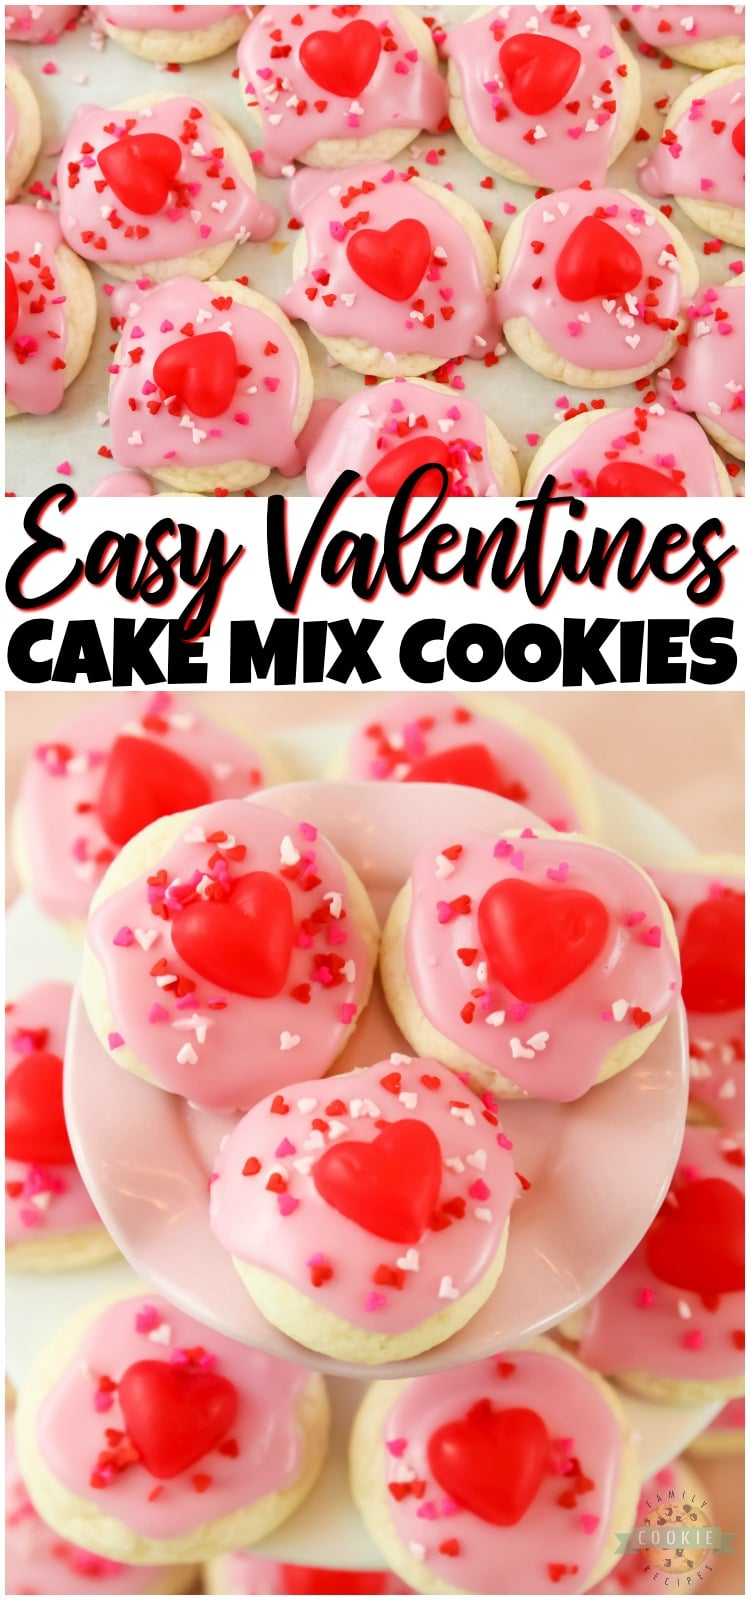 Valentines Cake Mix Cookies made with just 3 ingredients in under 30 minutes! Quick & Easy Valentines dessert recipe for your special someone! #Valentines #cookies #baking #frosting #sprinkles #ValentinesDay #recipe from FAMILY COOKIE RECIPES via @buttergirls